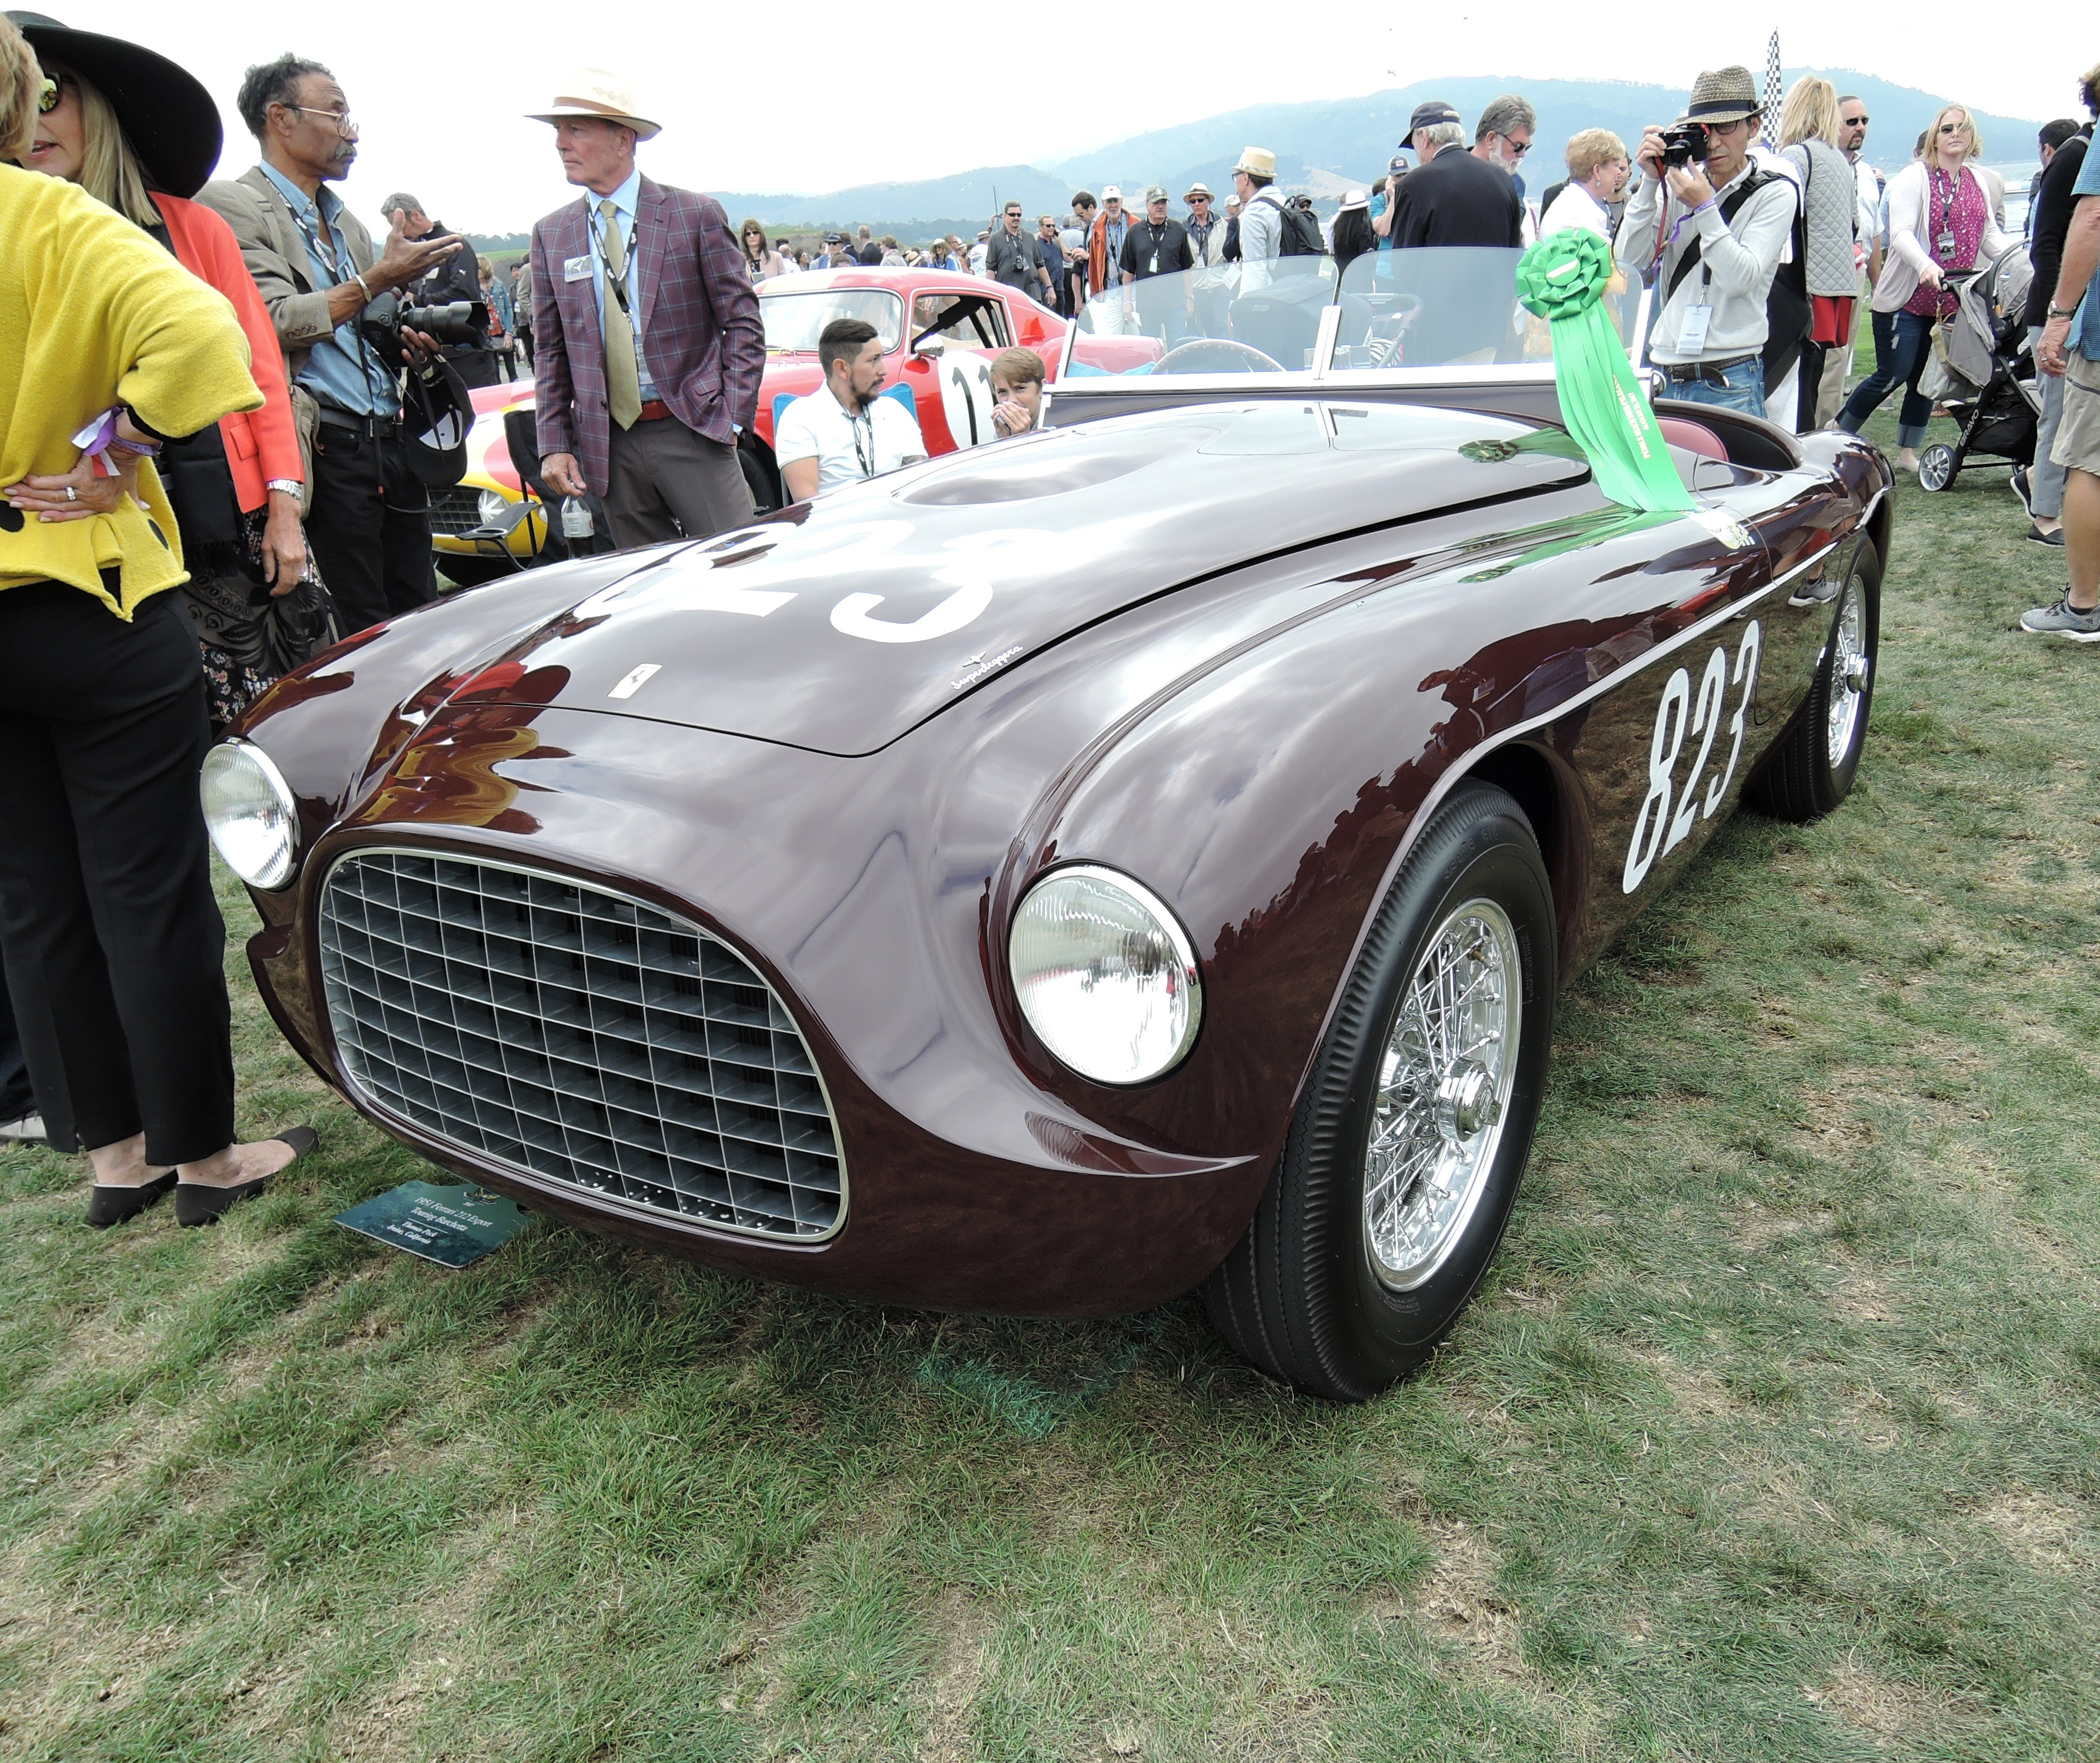 dark red 1951 Ferrari 212 Export Touring Barchetta; Sn 0102E - Pebble Beach Concours d'Elegance 2017